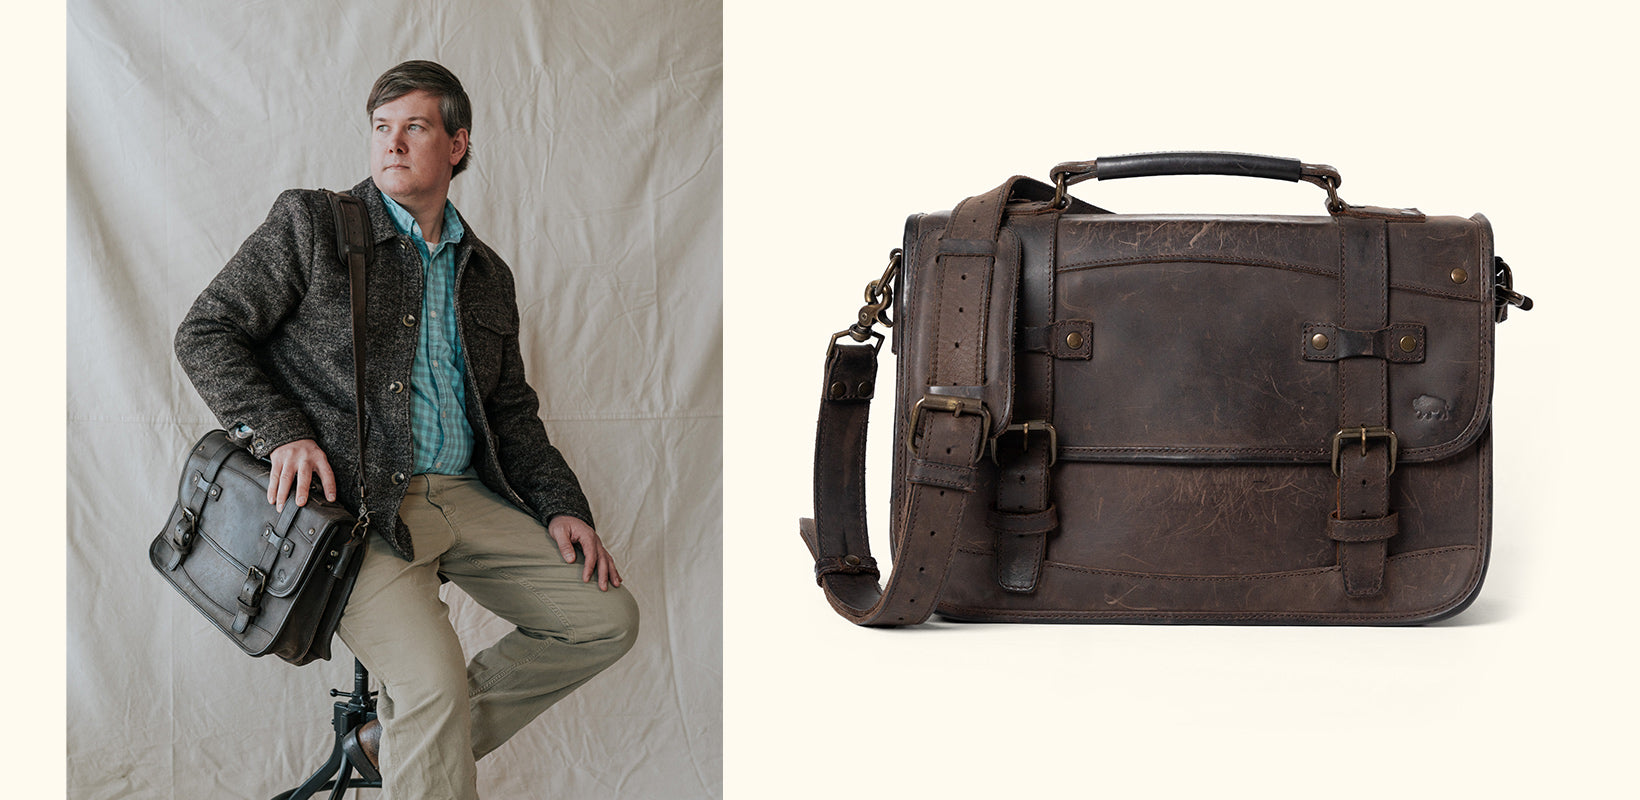 Buffalo Jackson Worn leather goods